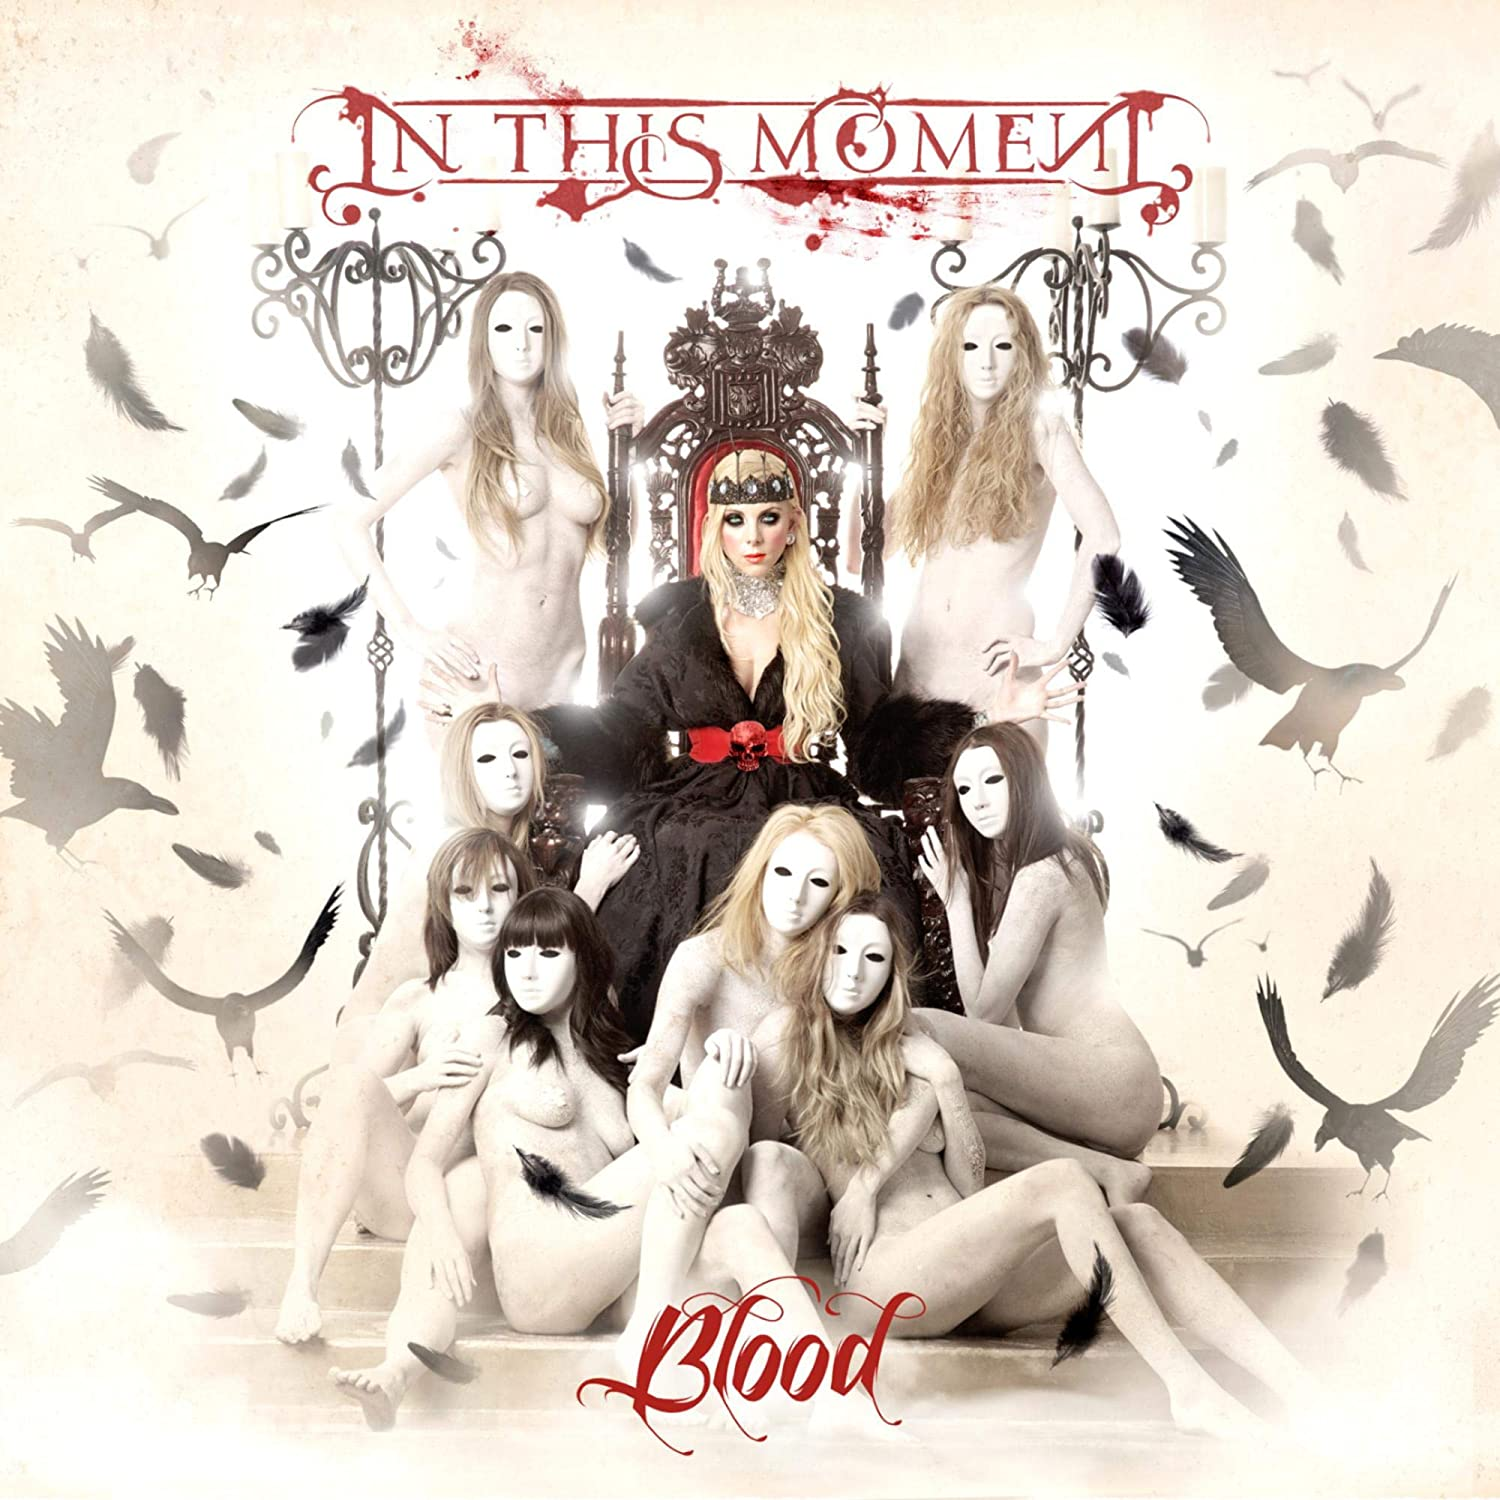 In This Moment - Blood [LP] (Blood Splatter Vinyl, limited) - Urban Vinyl | Records, Headphones, and more.